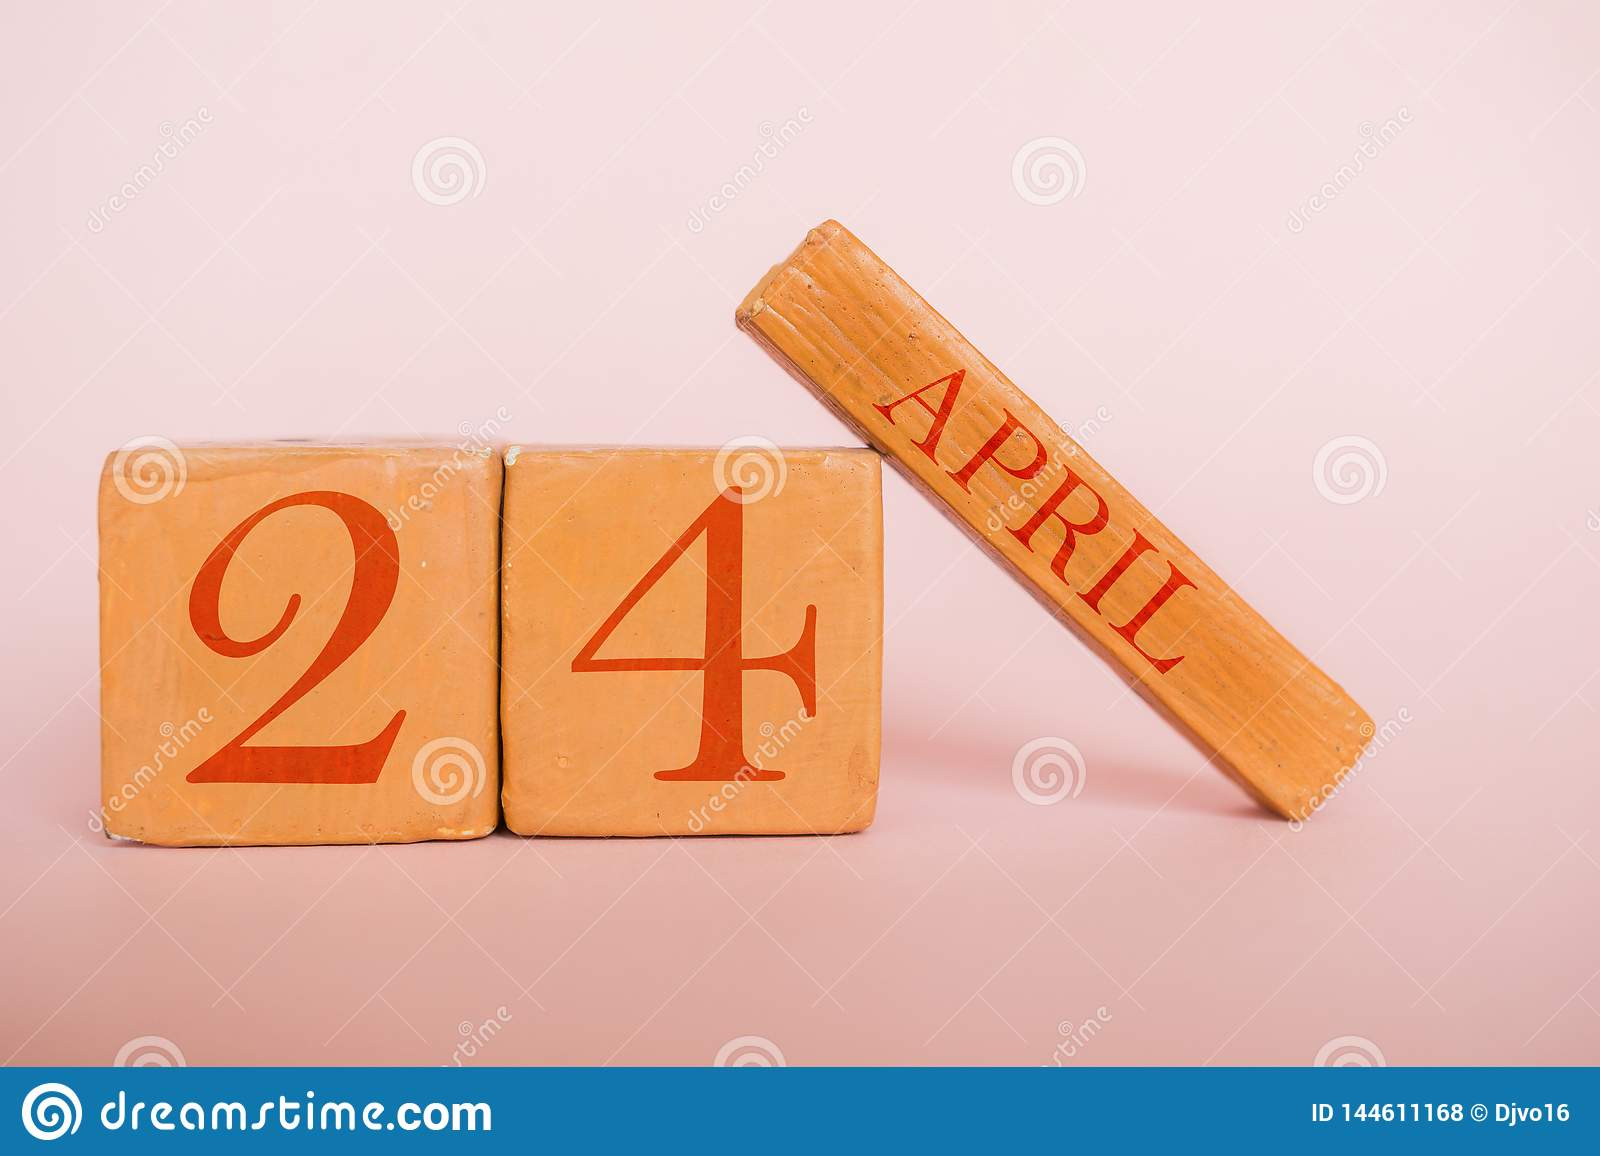 april 24th. Day 24 of month, handmade wood calendar  on modern color background. spring month, day of the year concept